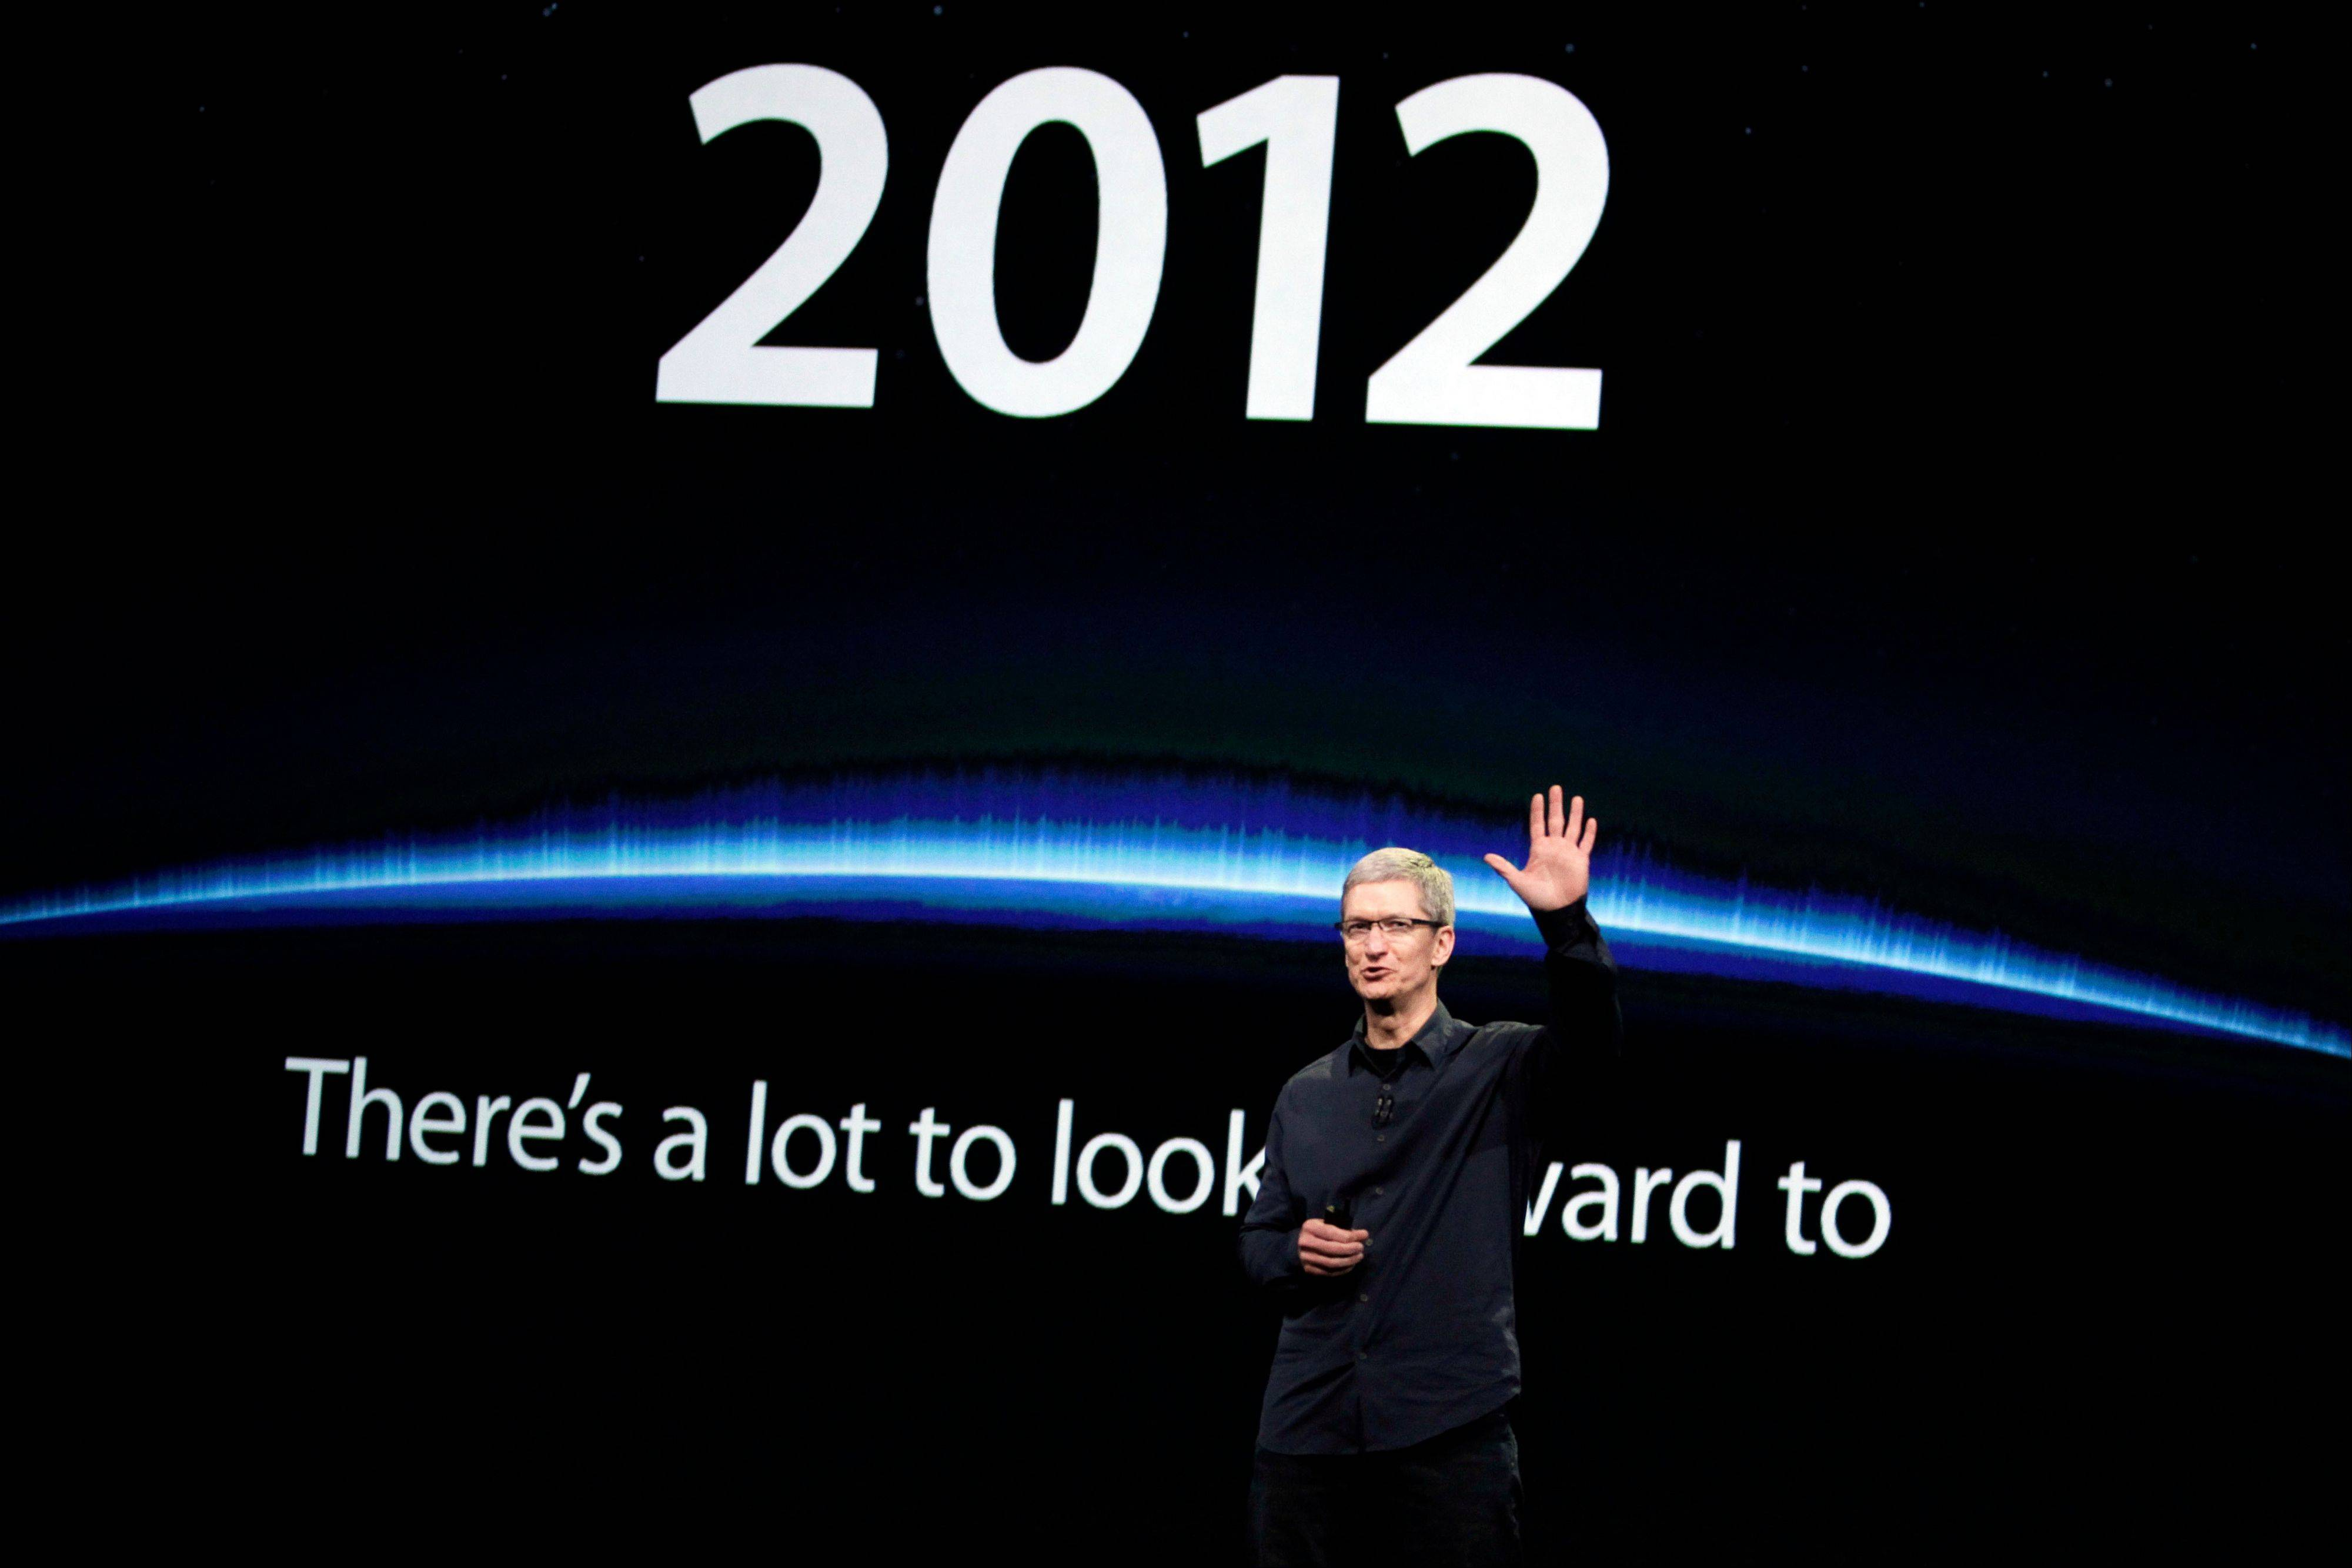 Apple CEO Tim Cook announces a new iPad during an Apple announcement March 7. Those who follow Apple believe they have figured out most of the particulars of a smaller iPad expected to be revealed on Tuesday.